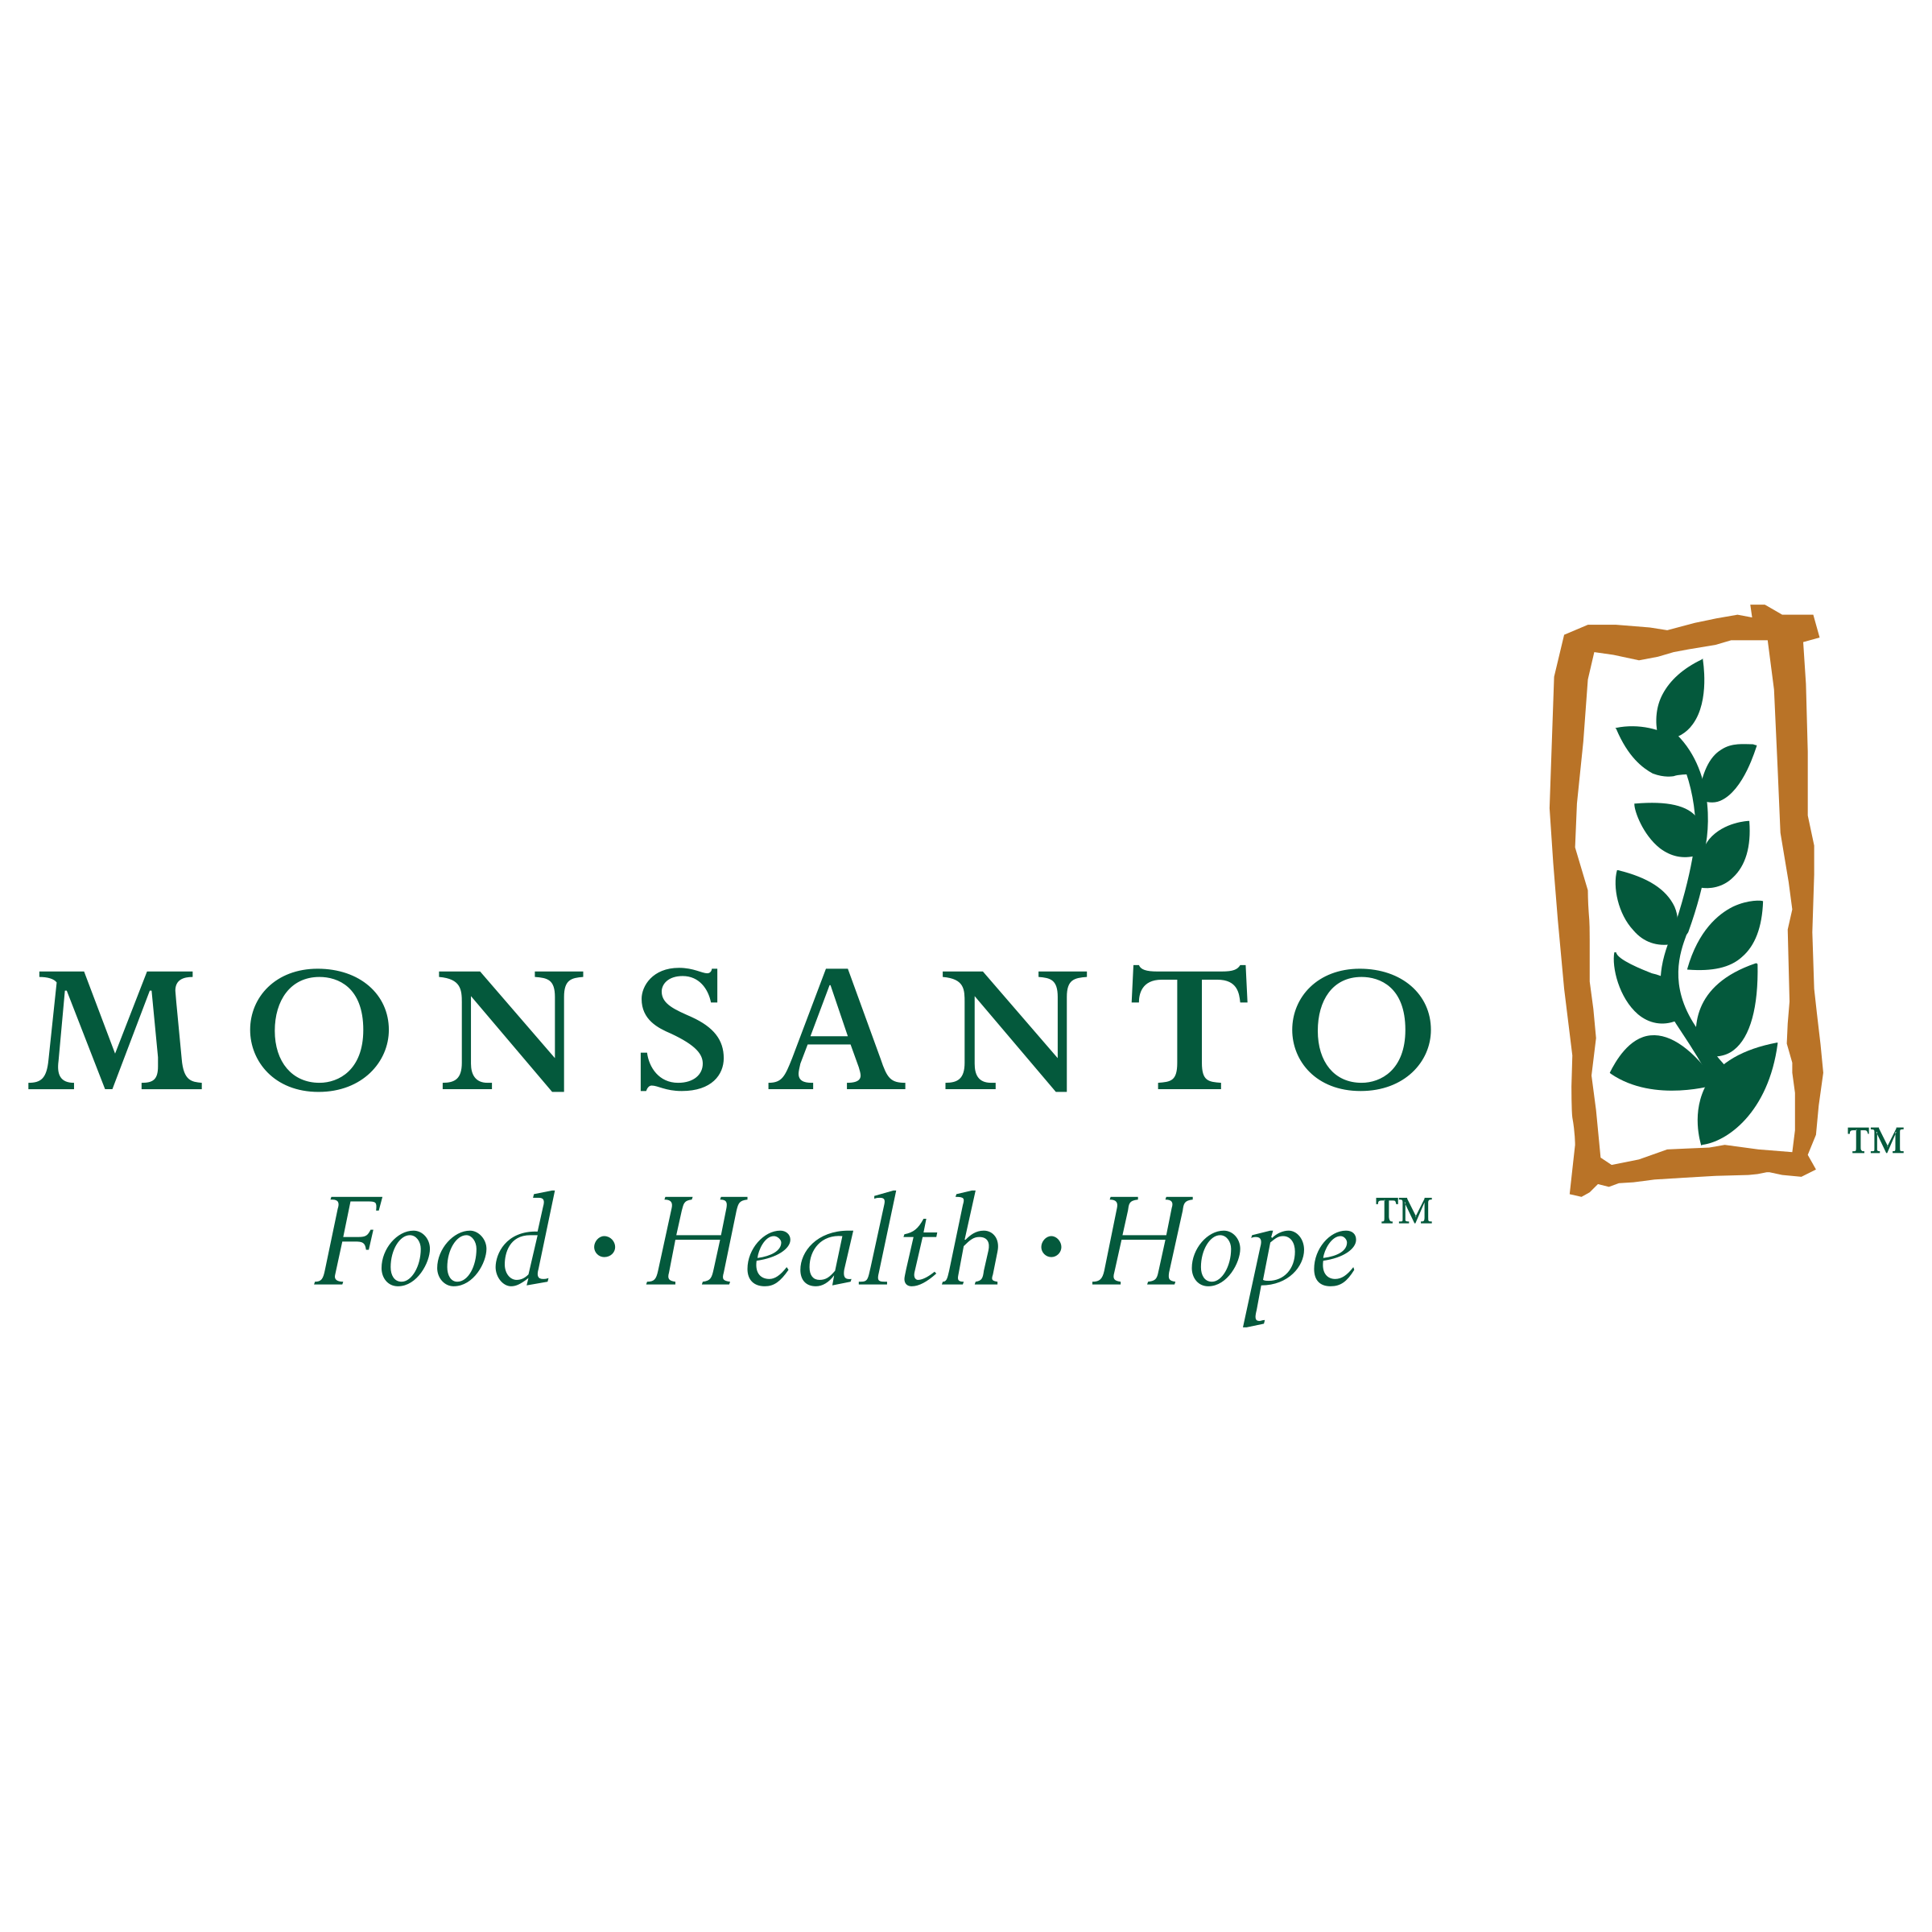 Monsanto Logo - Monsanto Logo PNG Transparent & SVG Vector - Freebie Supply